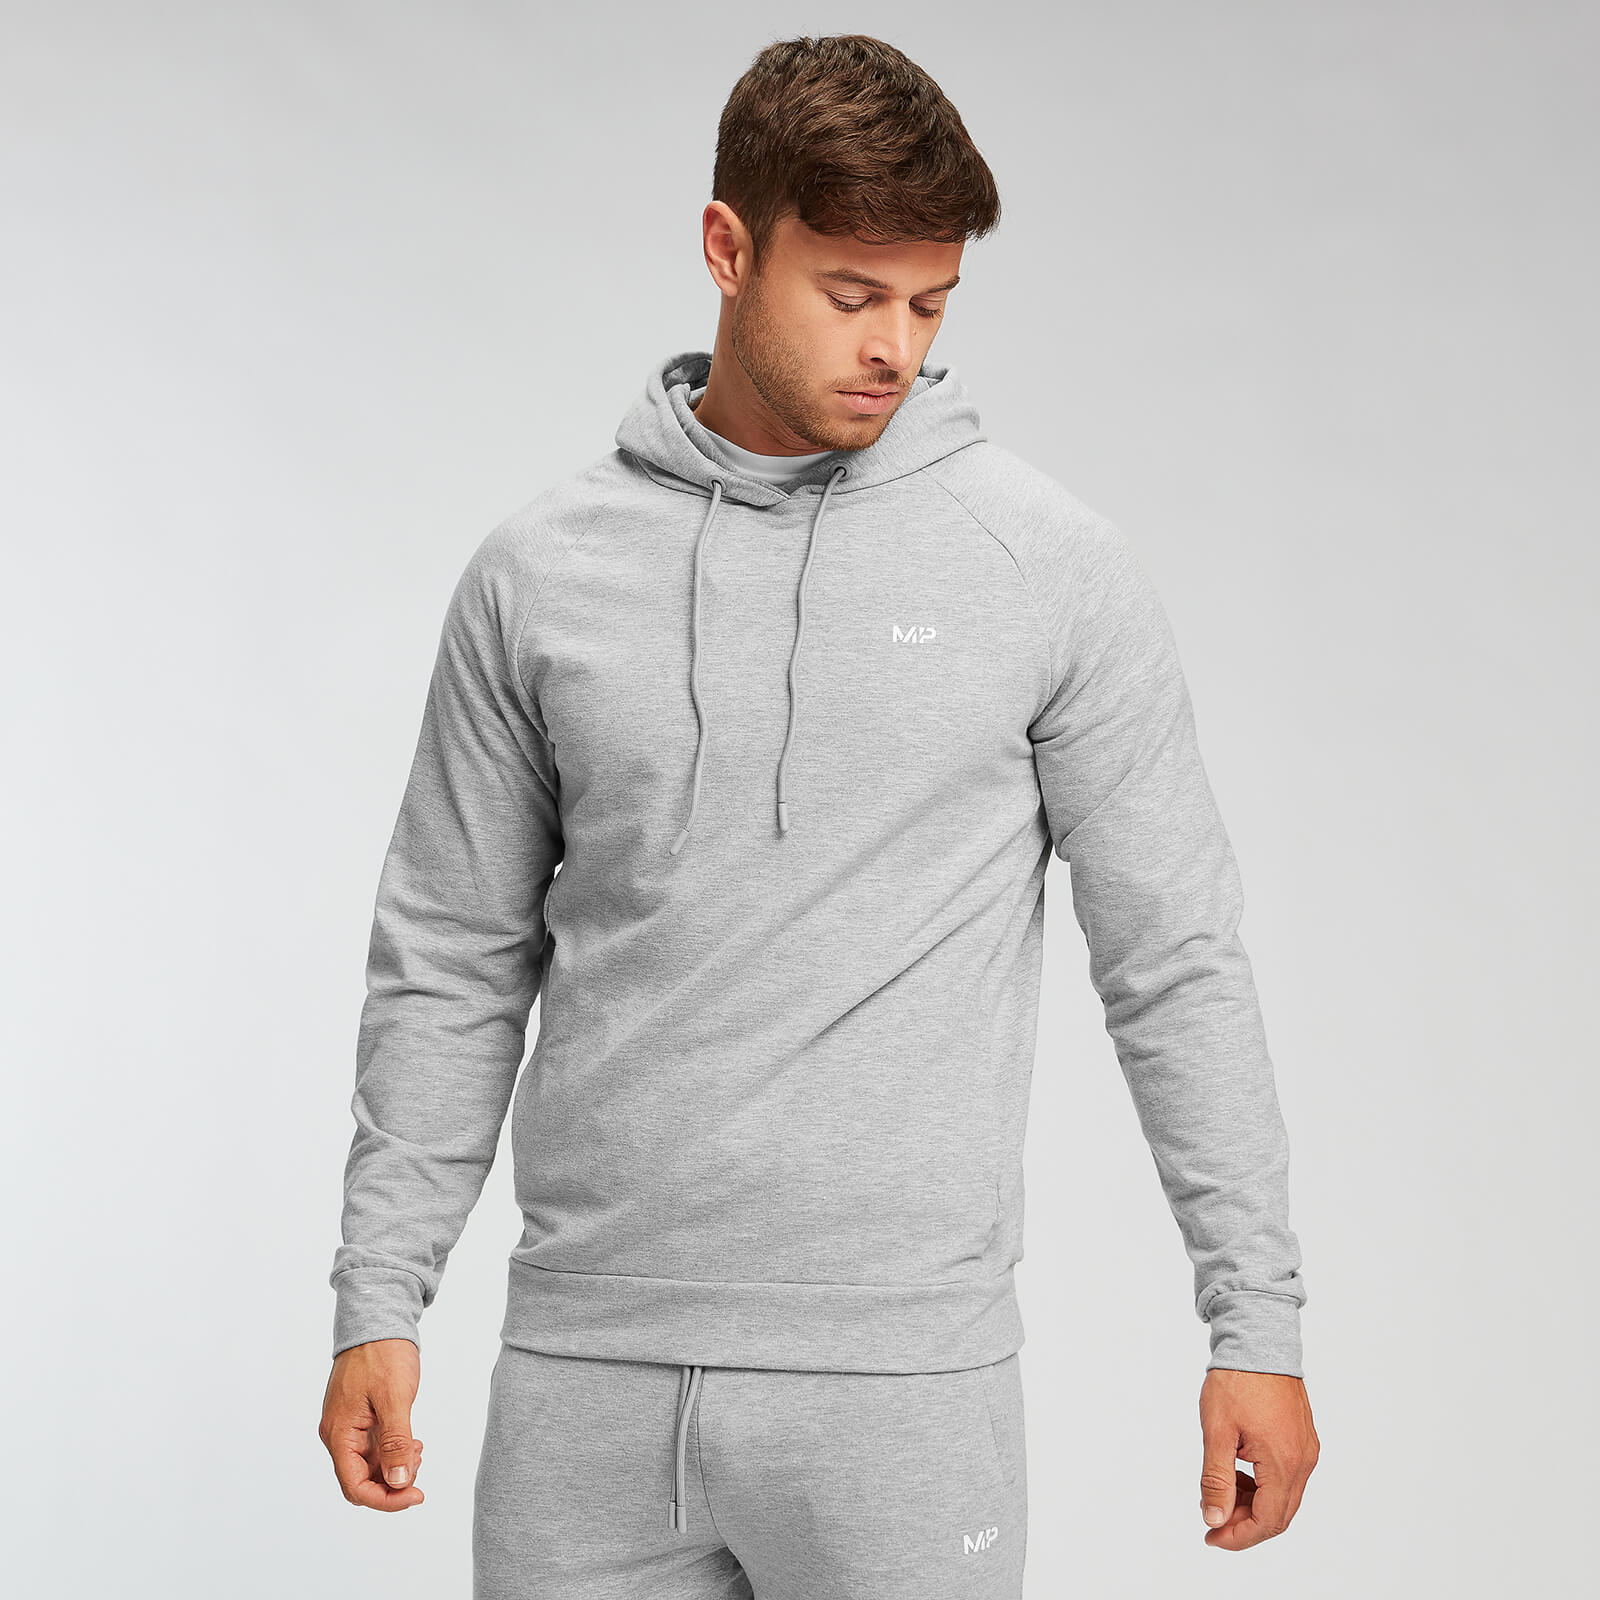 Sweat à capuche MP Form pour hommes – Gris chiné - S